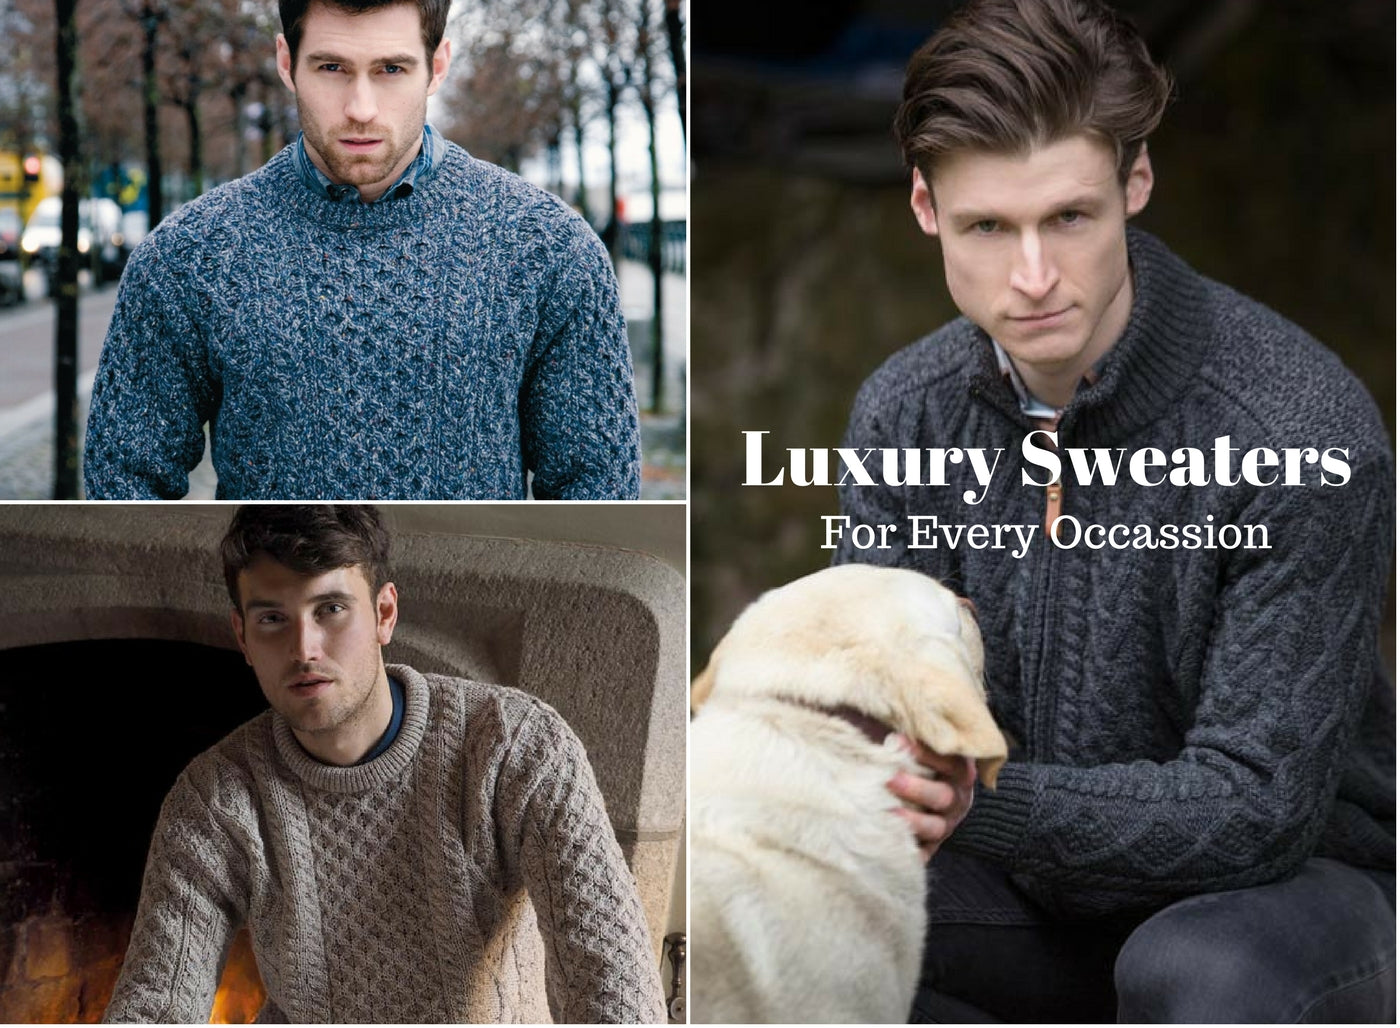 Luxury Irish Aran Sweaters from Aran of Ireland